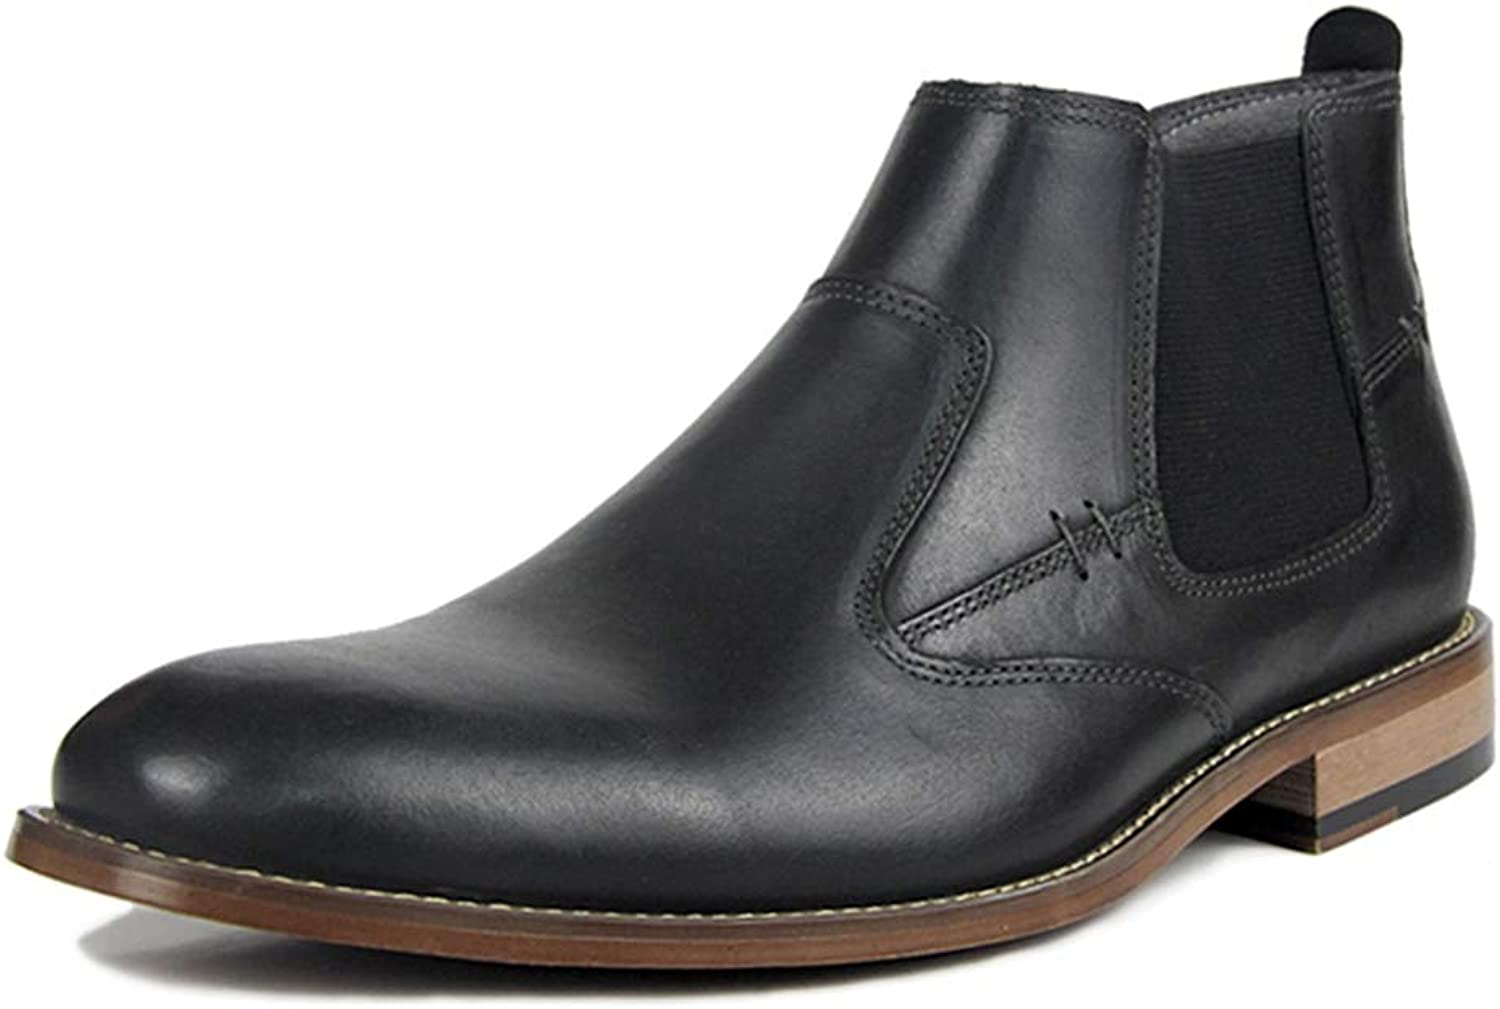 Todaysunny Chelsea Boots Men Leather Ankle Slip-on Boot Black Brown Formal Dress Casual Moccasins shoes